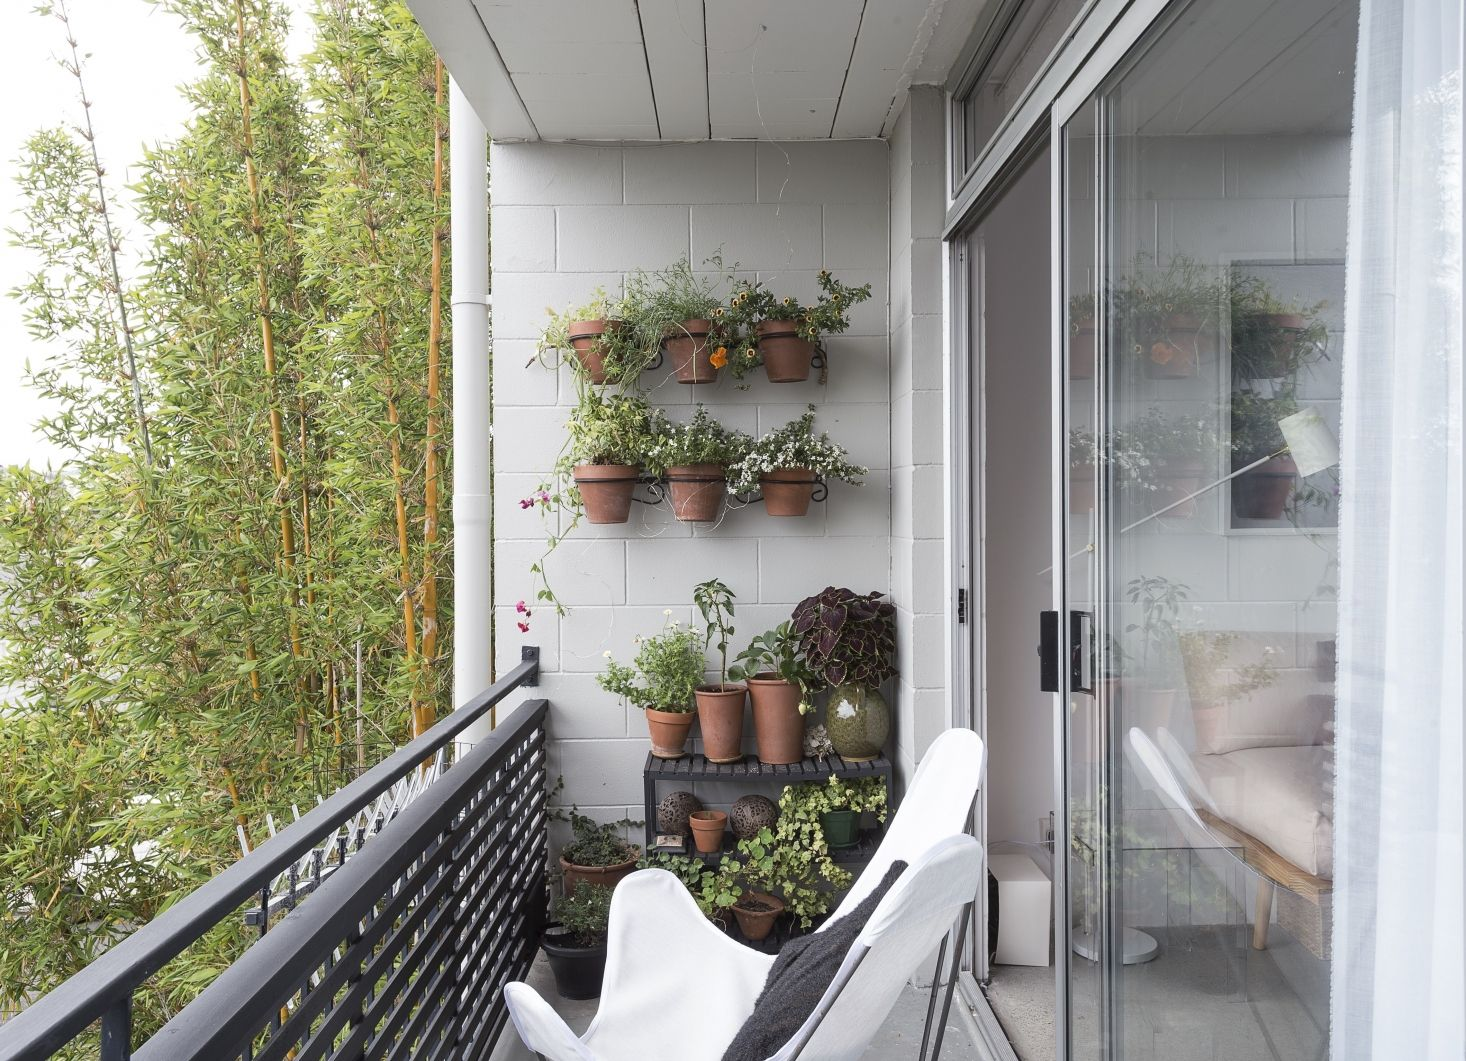 Photo of Steal This Look: Balcony Garden on a Budget – Gardenista